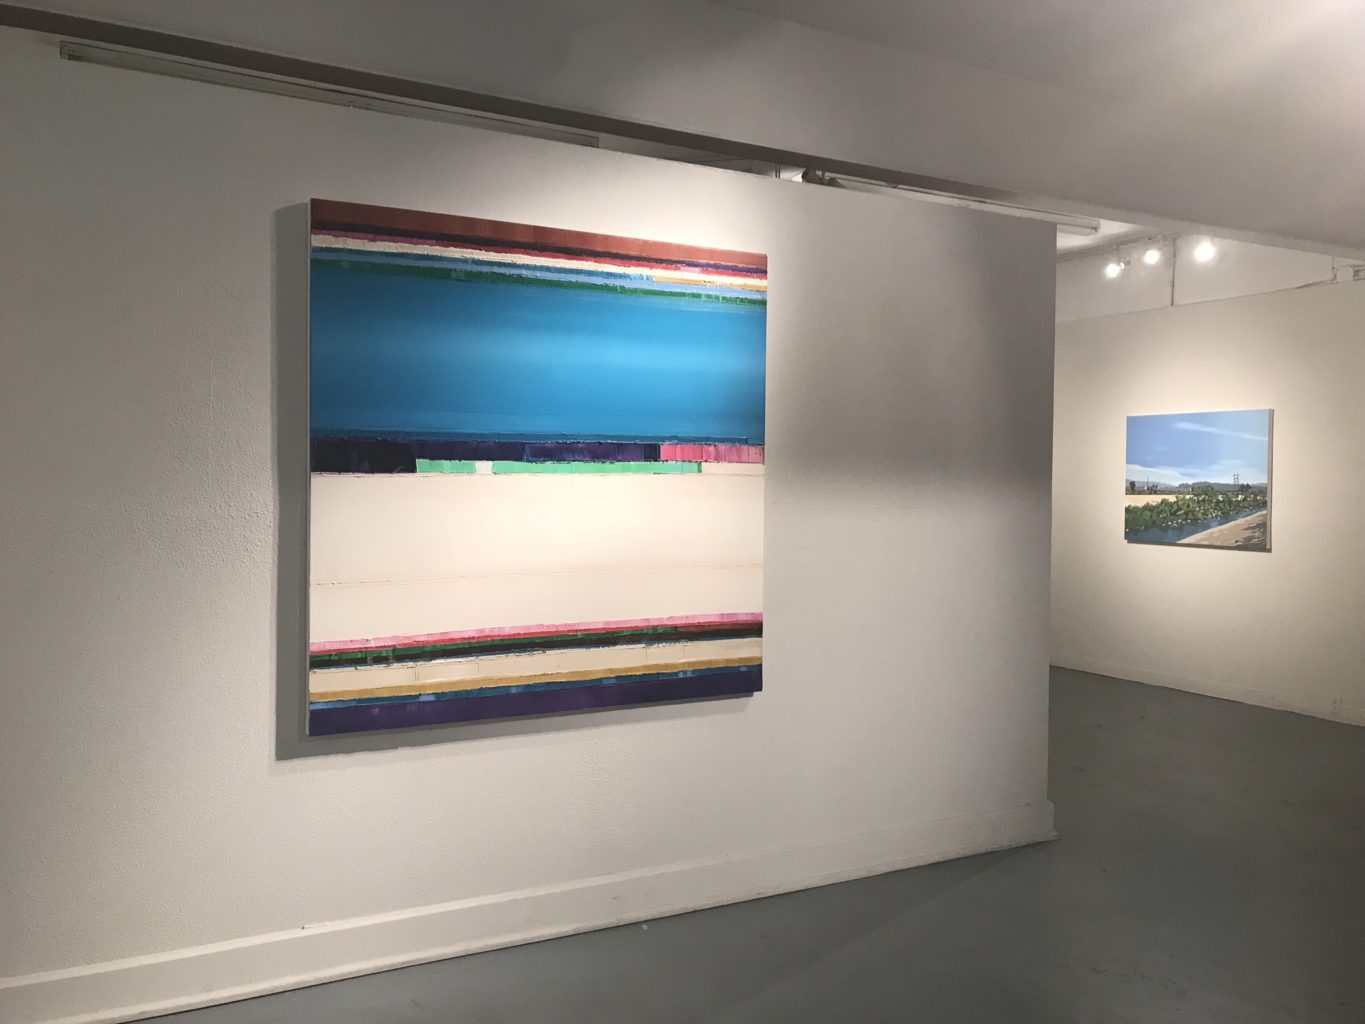 Installation View, Oil on canvas, 60x60 inches, 2018